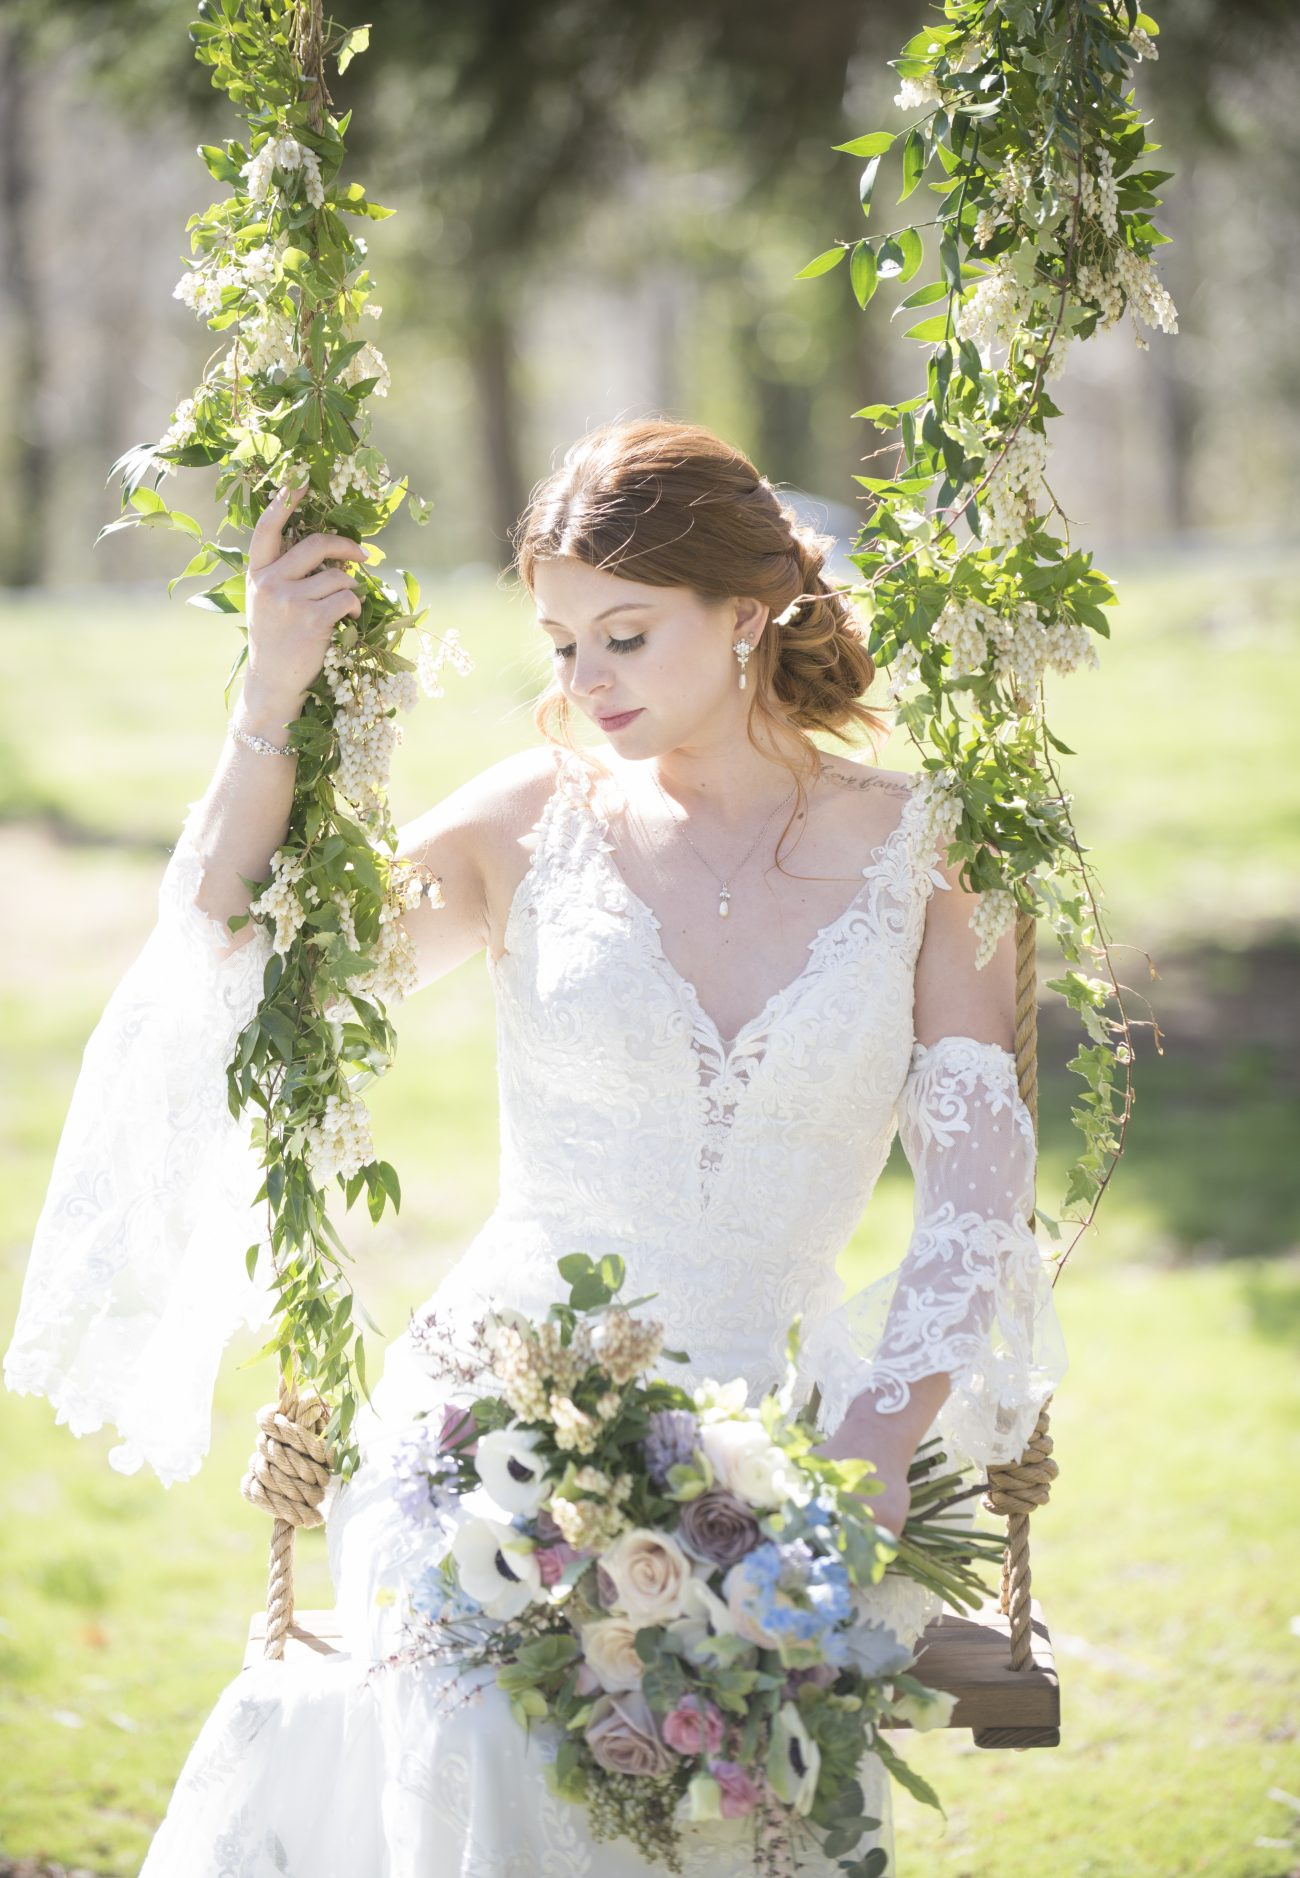 Bride sitting on floral wrapped tree swing